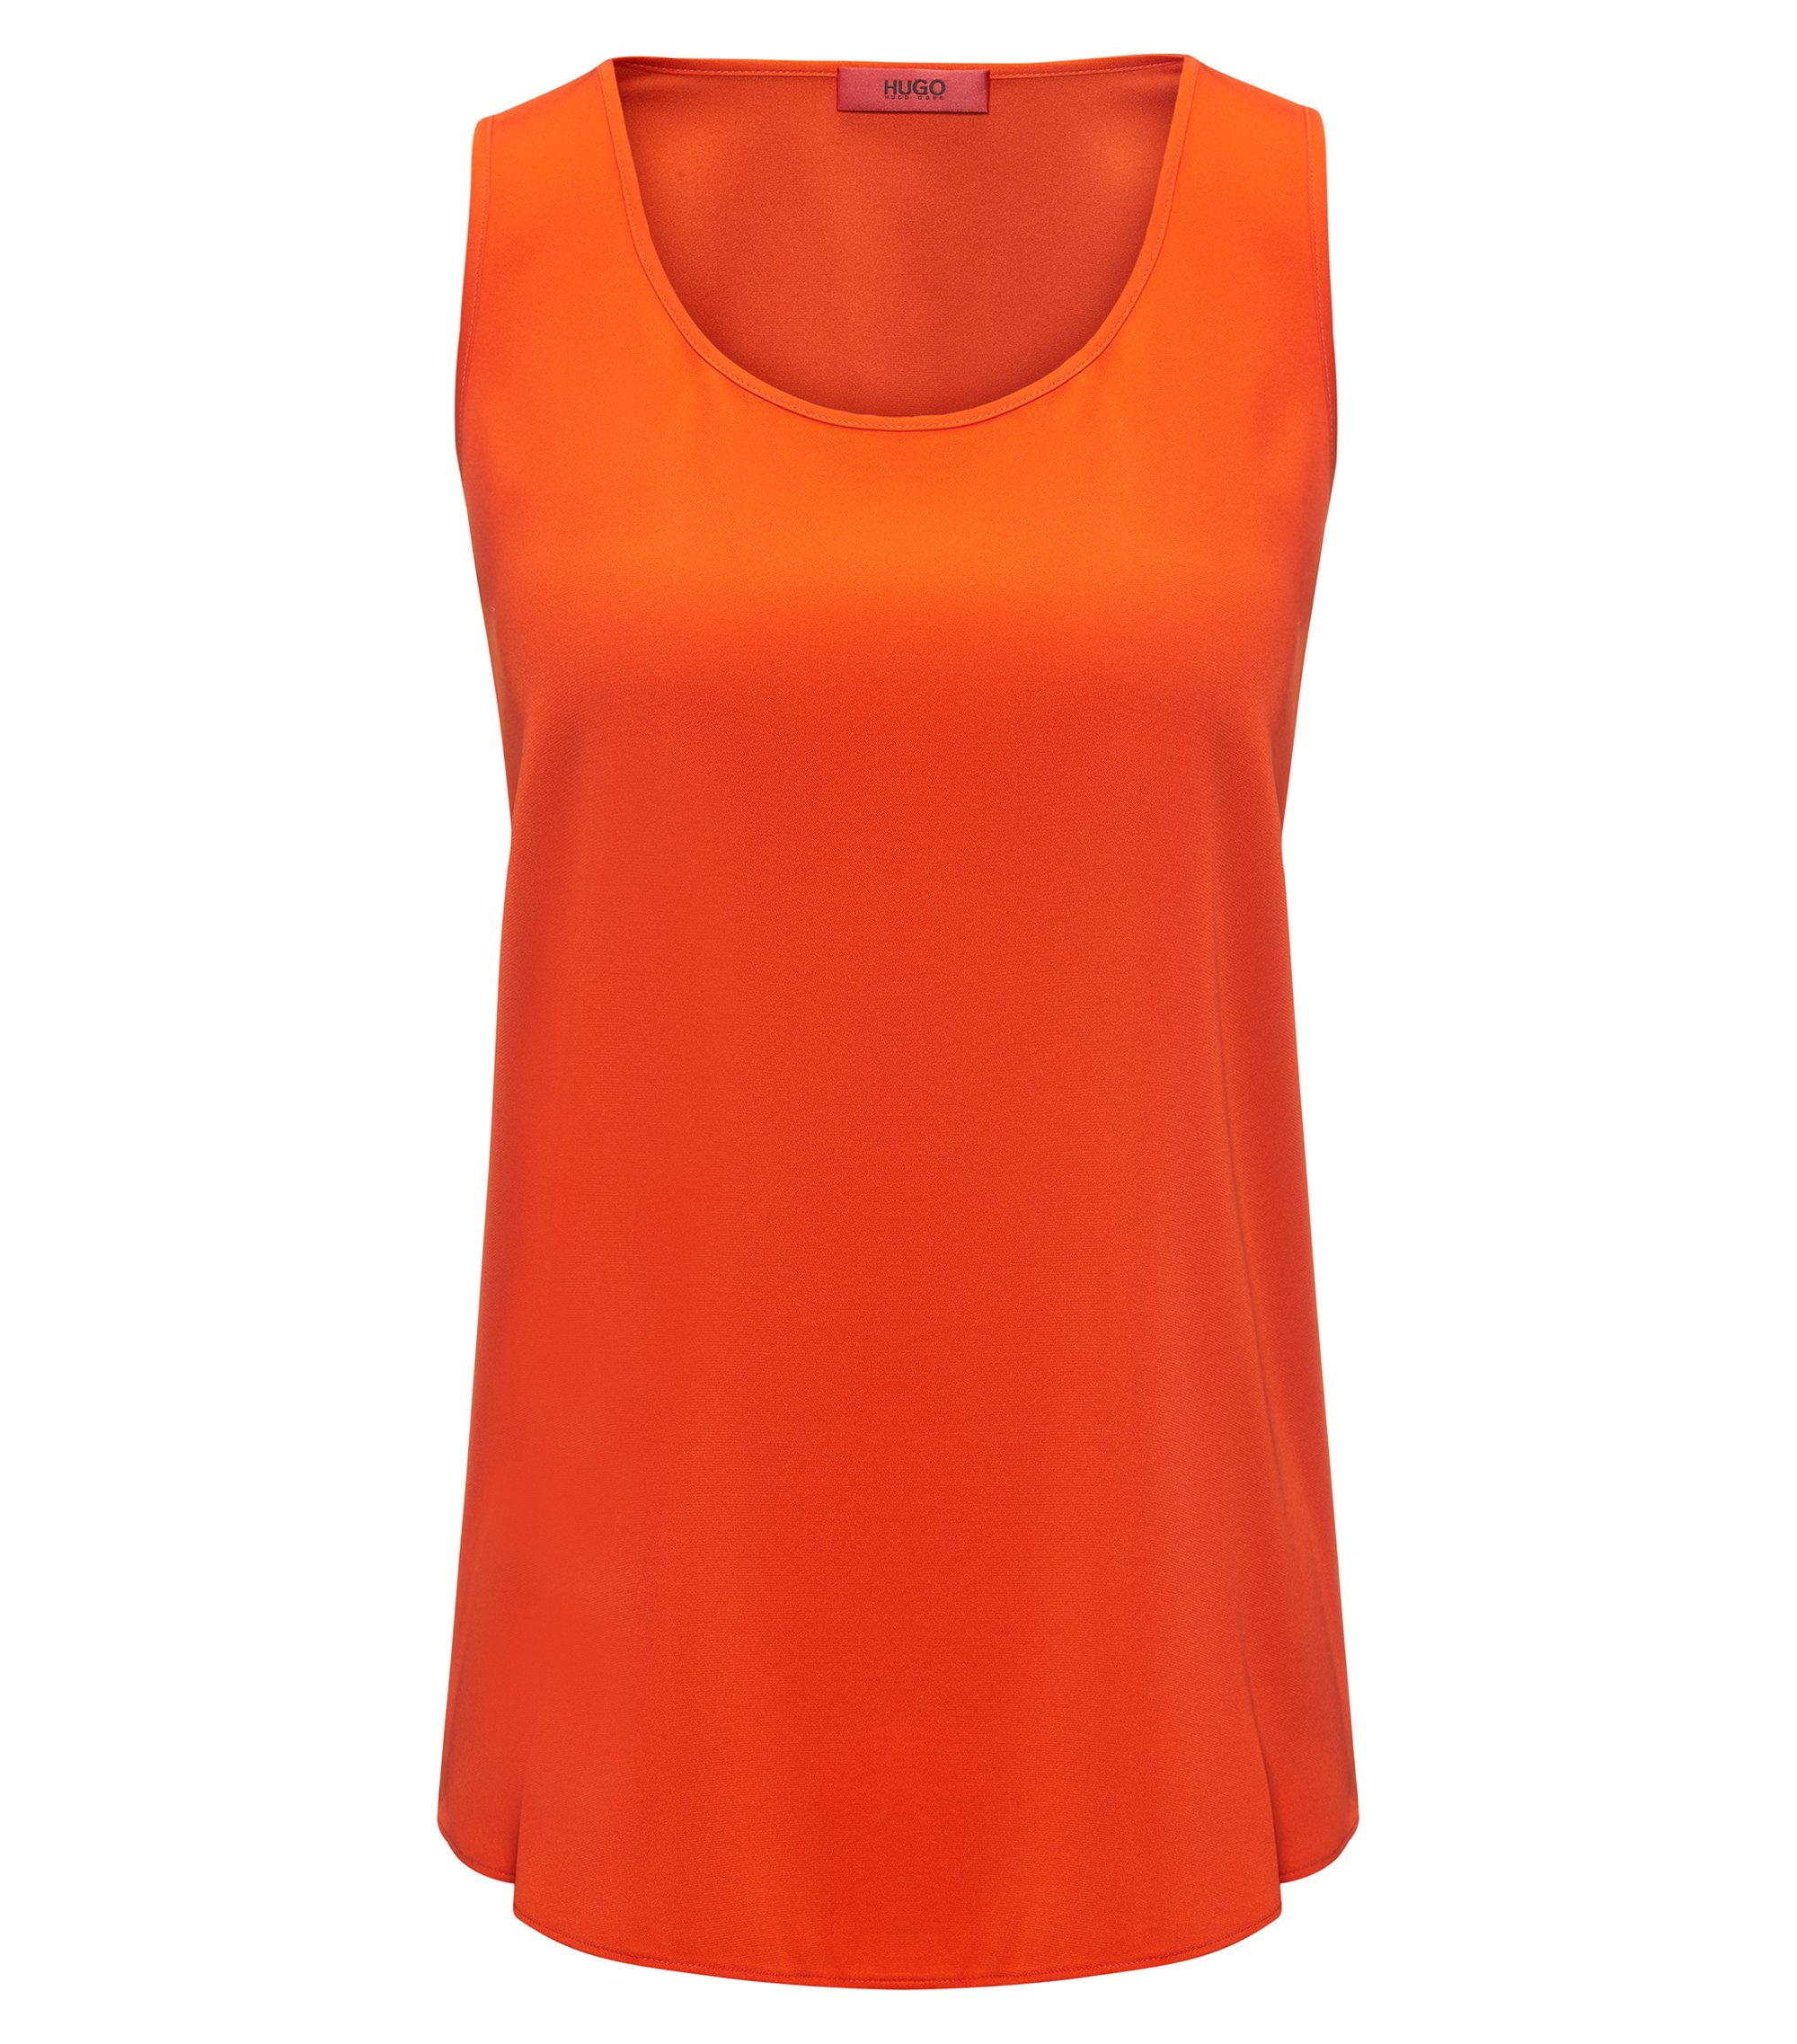 Silk Blend Top | Cendis, Orange